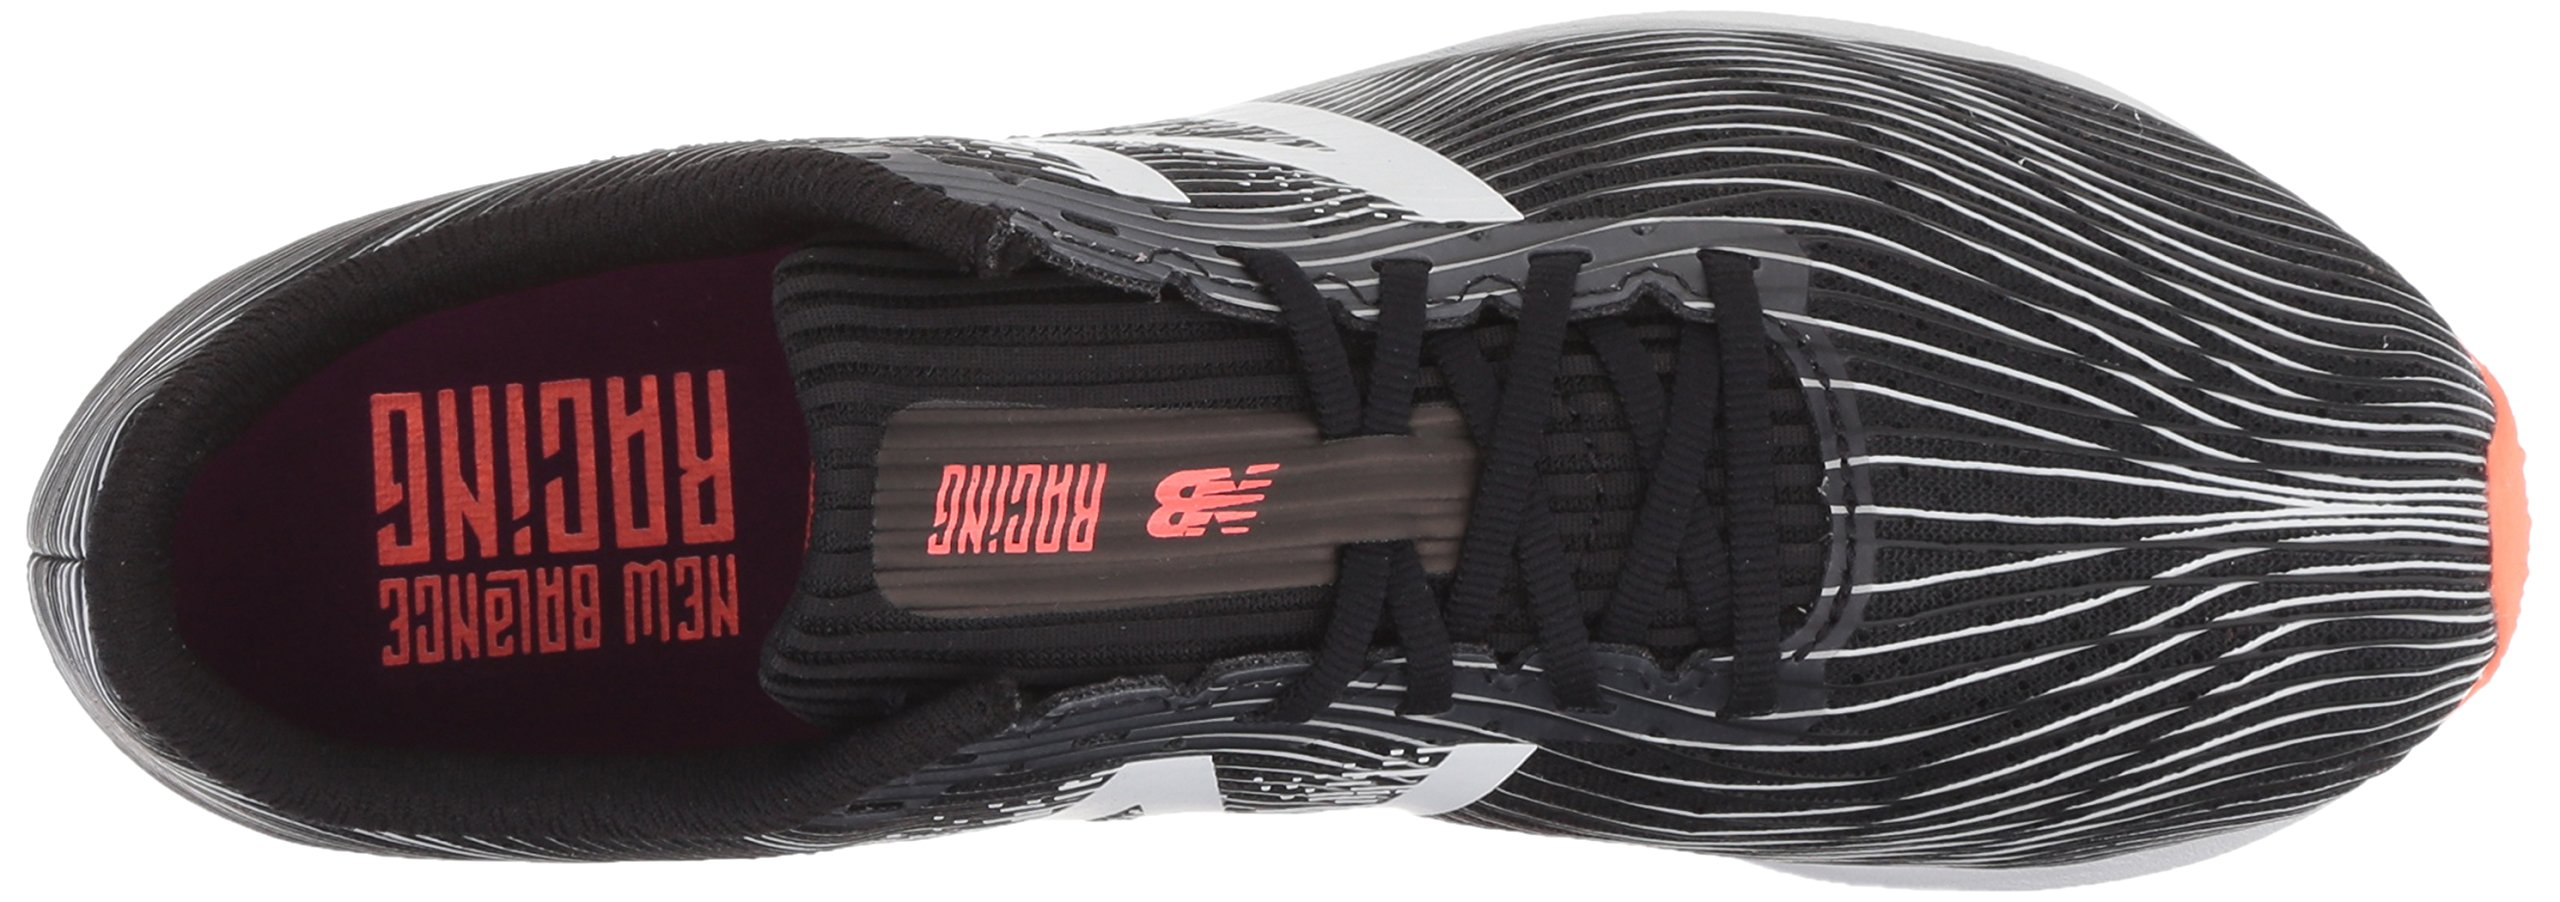 New Balance Women's 7v1 Cross Country Running Shoe Black, 5.5 B US by New Balance (Image #7)